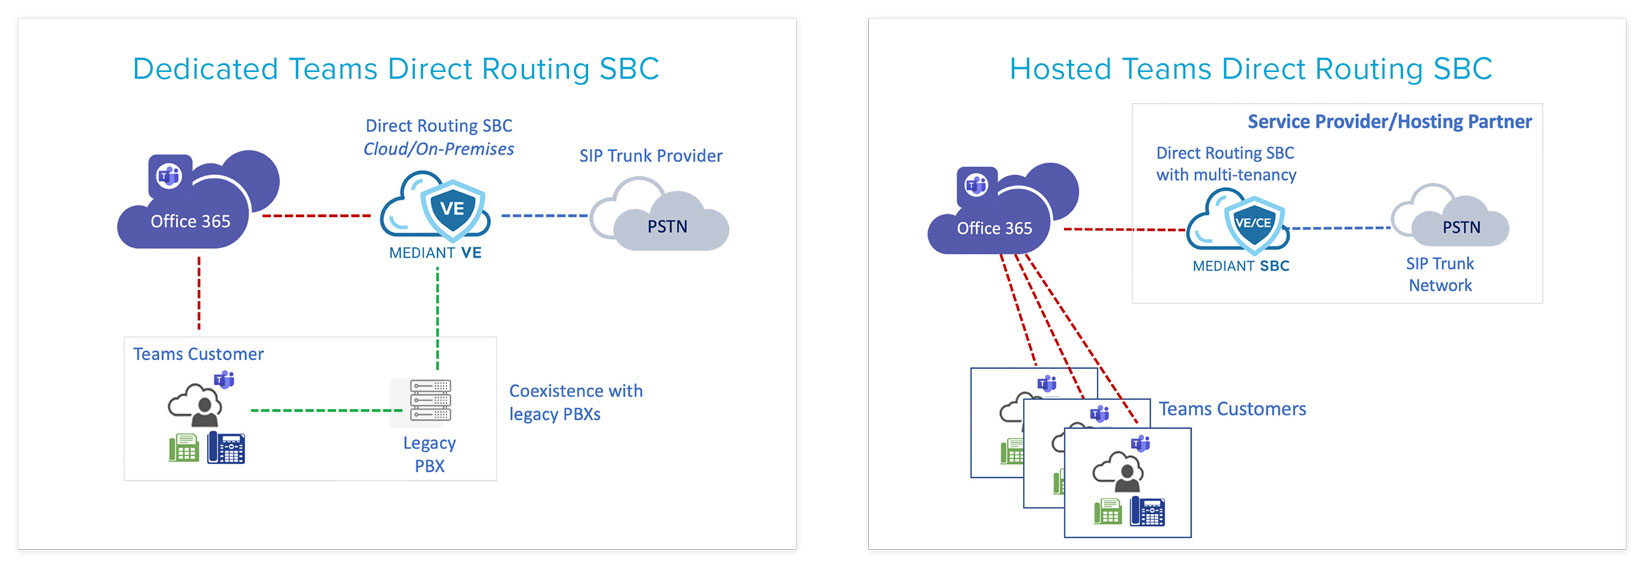 Direct Routing SBC Deployment Options